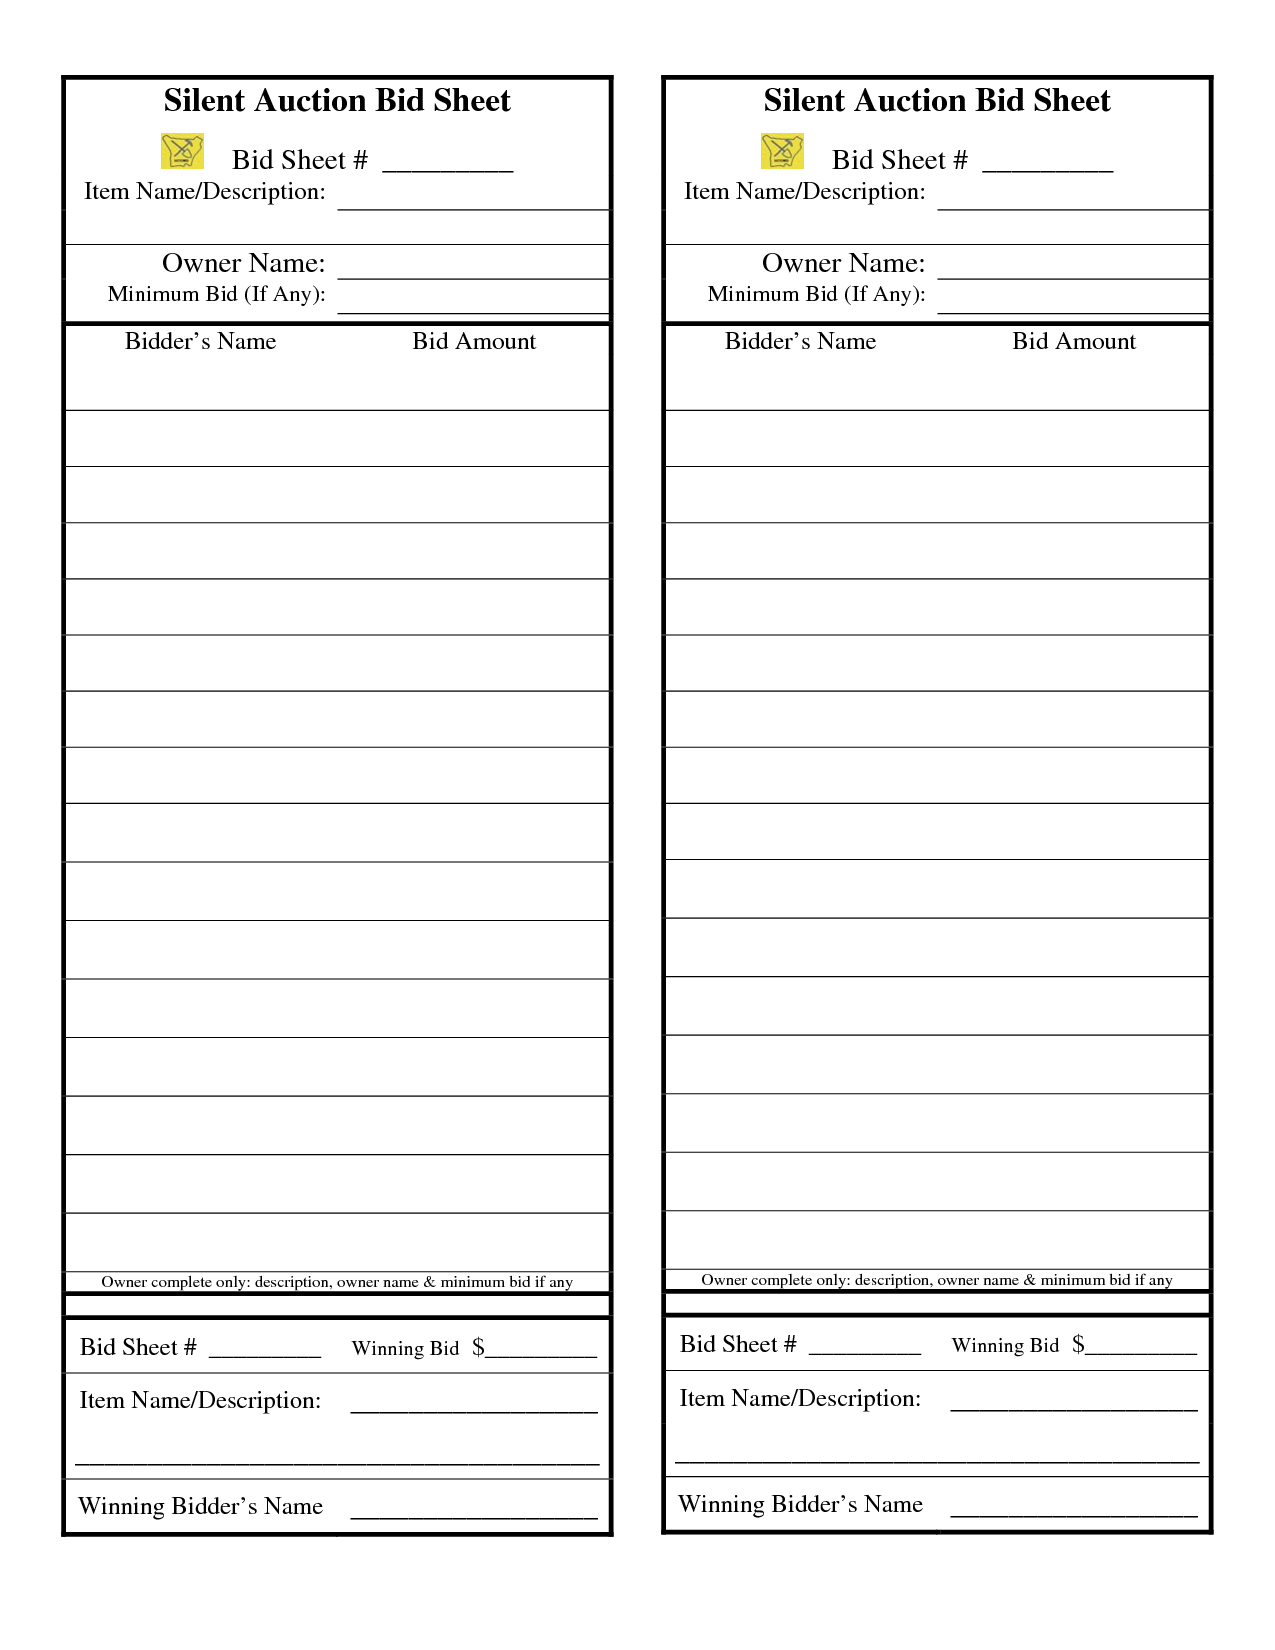 Silent auction bid sheet google search are we there for Silent auction program template